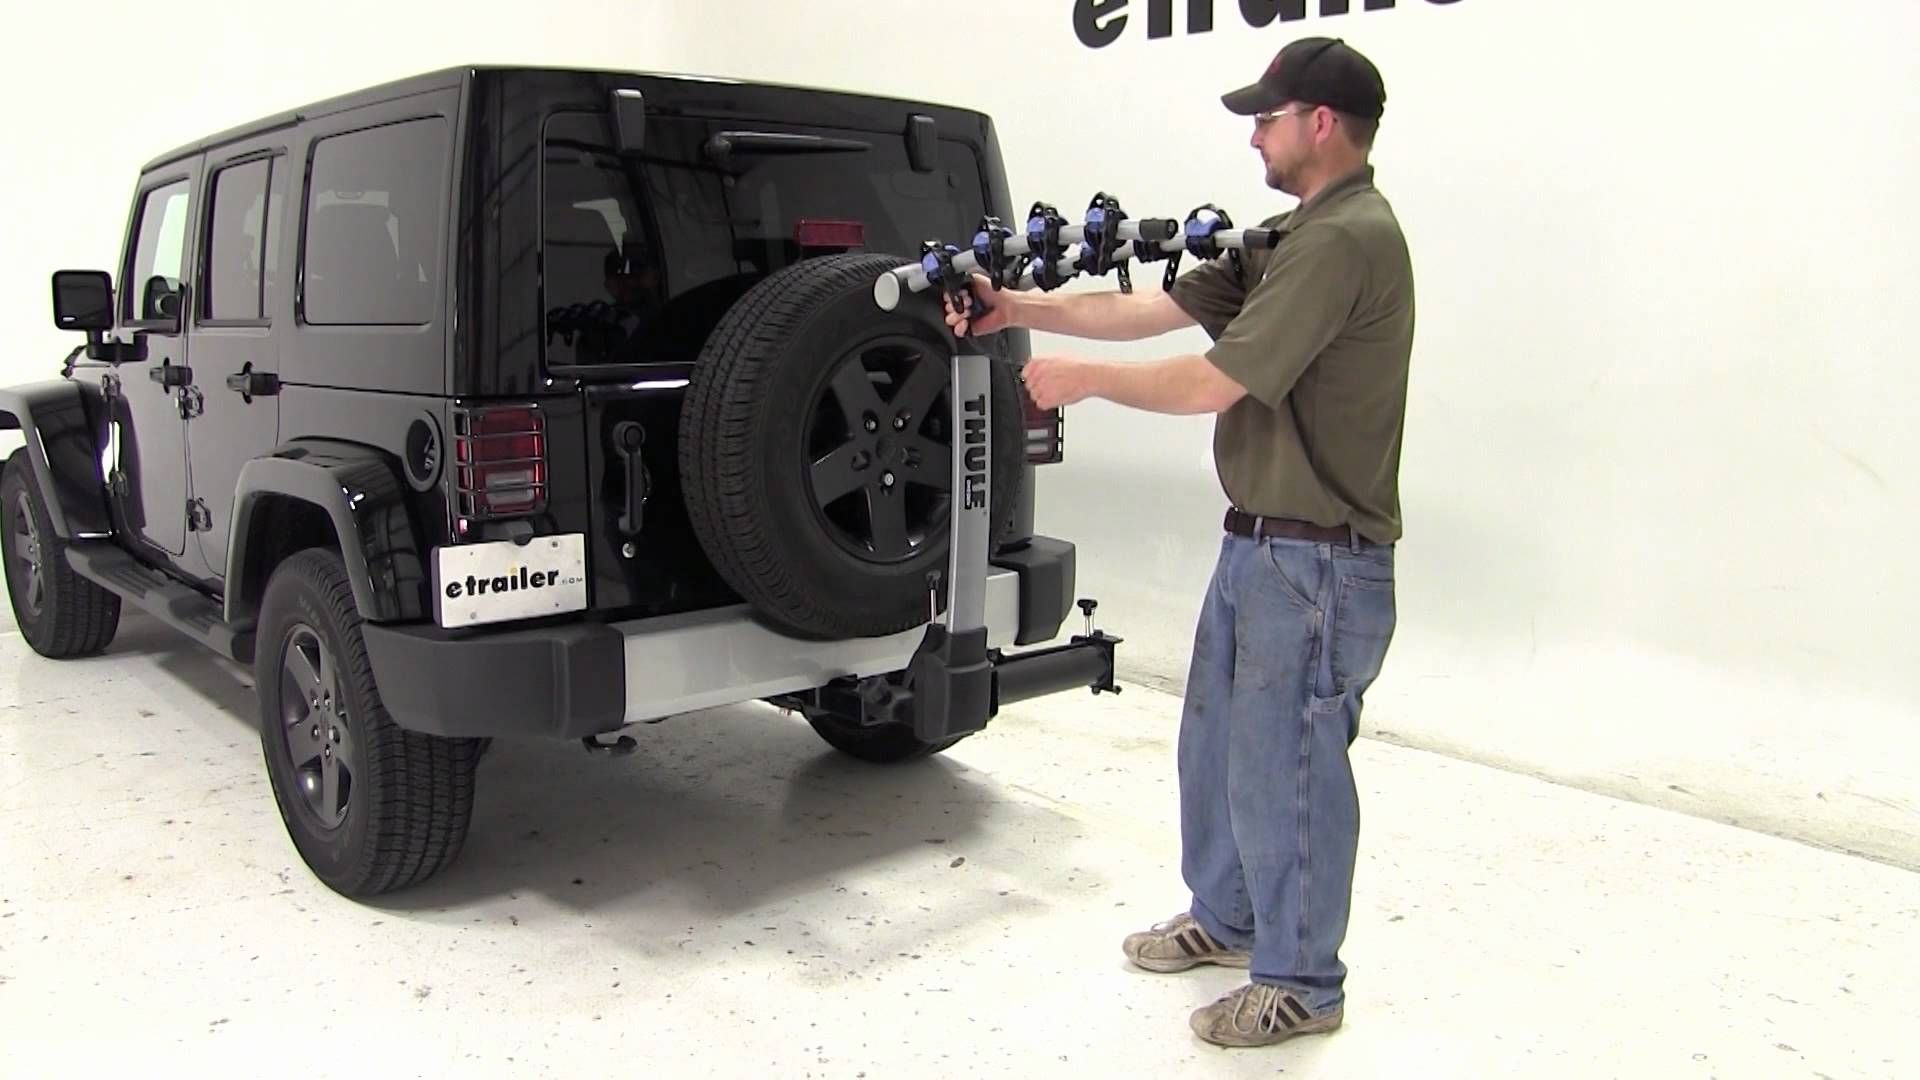 Maxresdefault Jpg Jeep Wrangler 2012 Jeep Wrangler Hitch Bike Rack